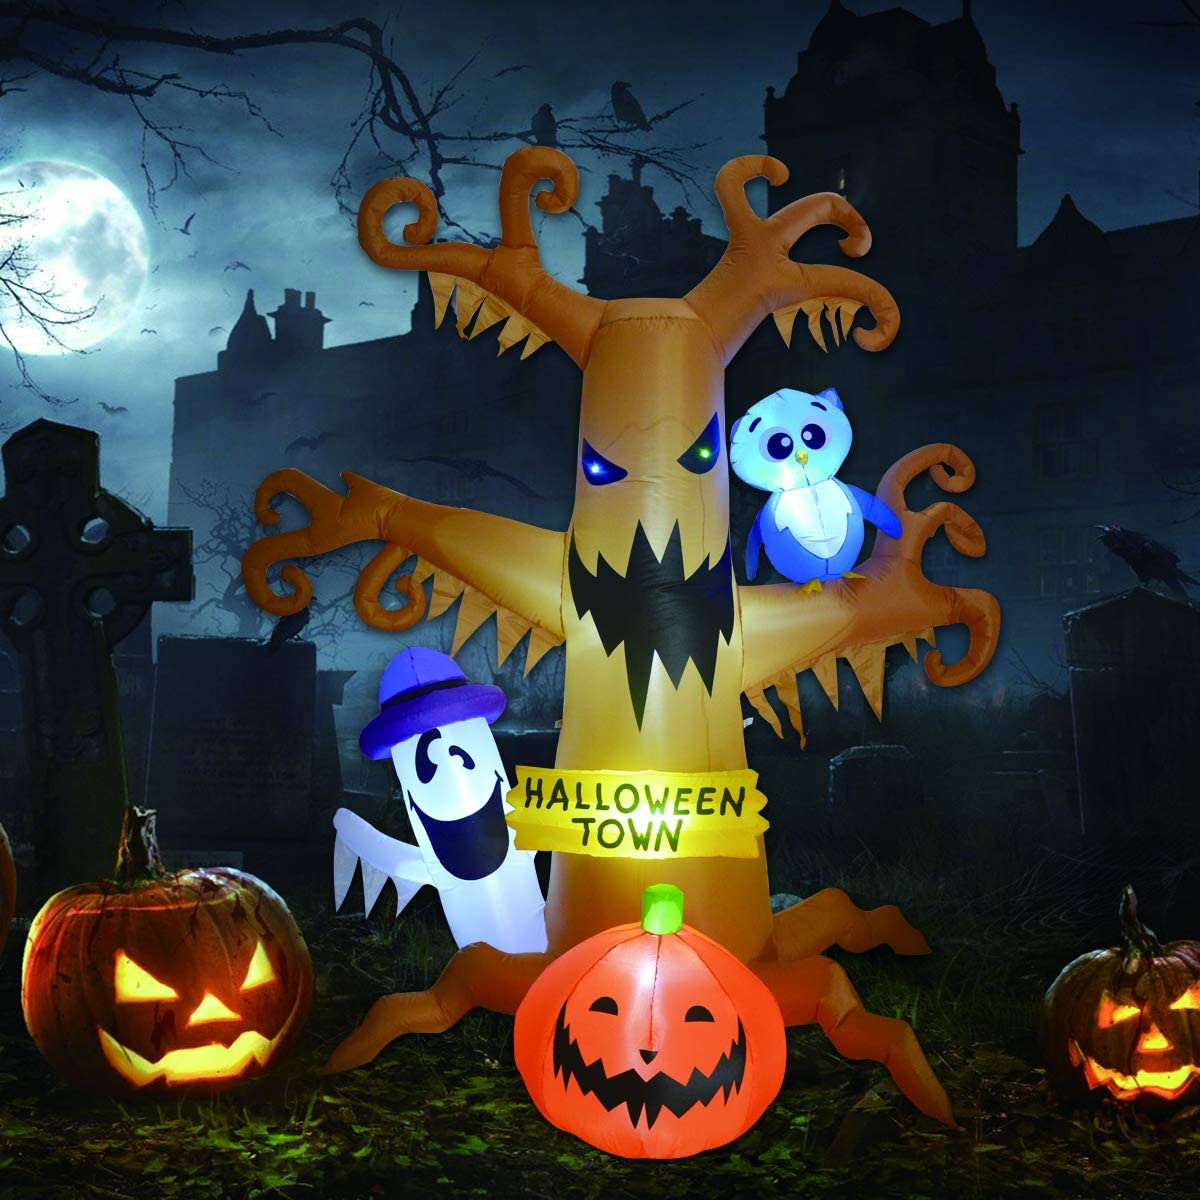 High Halloween Blow Up Inflatables Dead Tree with White Ghost,Pumpkin and Owl